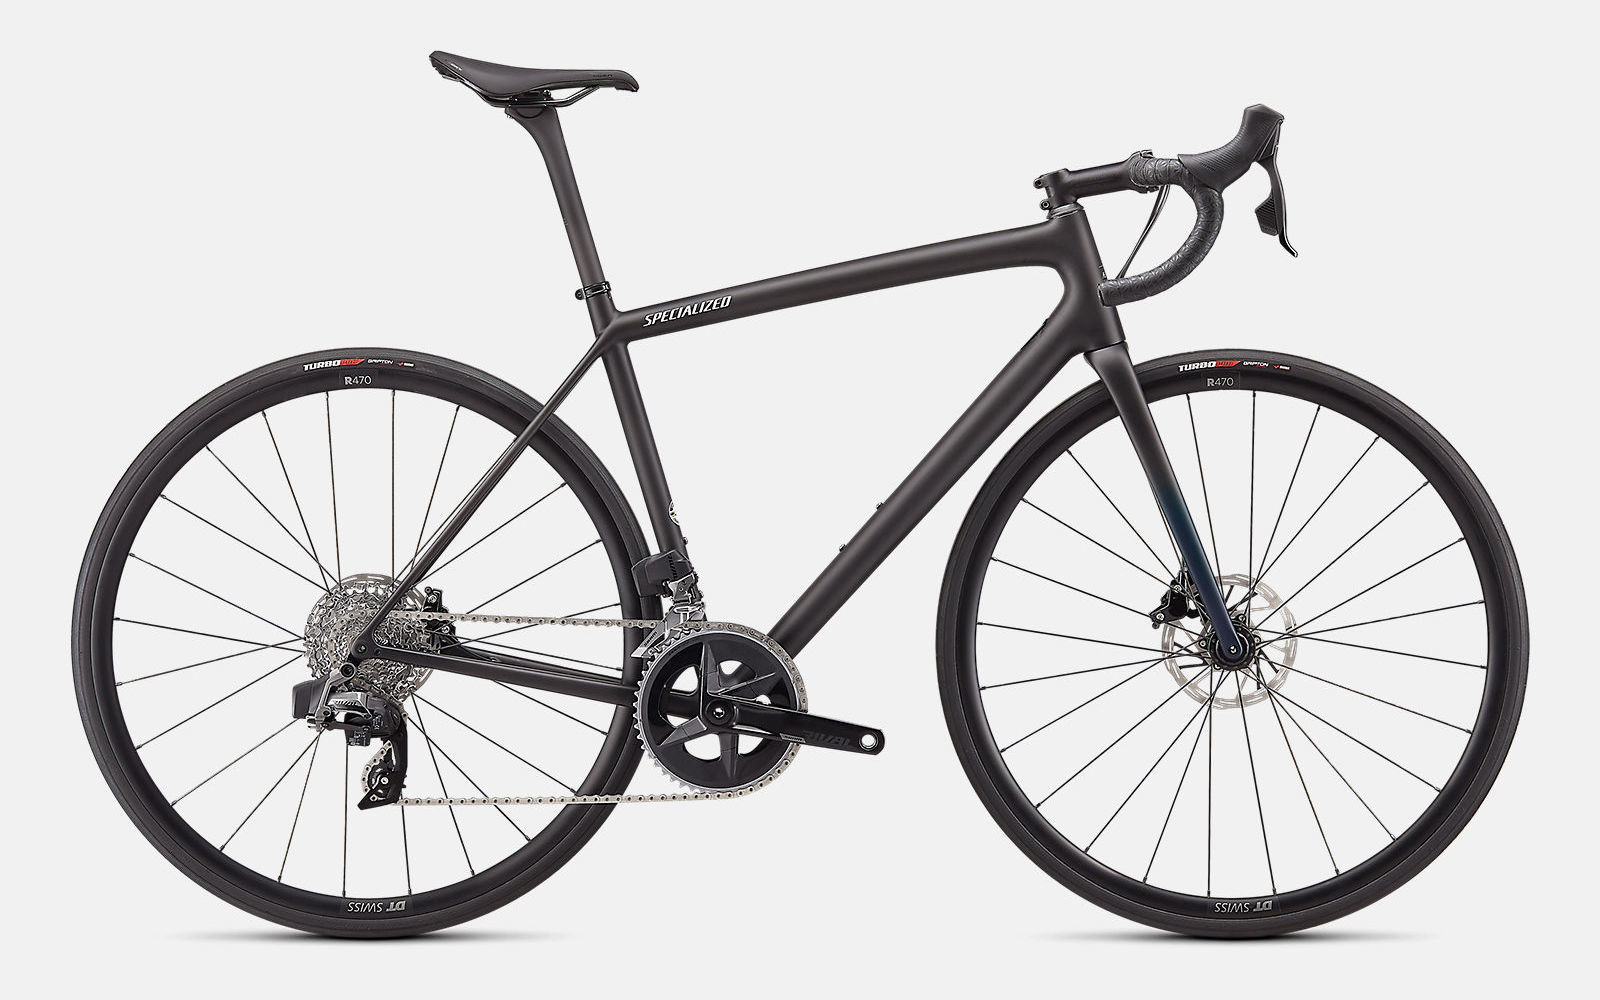 Picture of SPECIALIZED AETHOS COMP  Rival eTap AXS